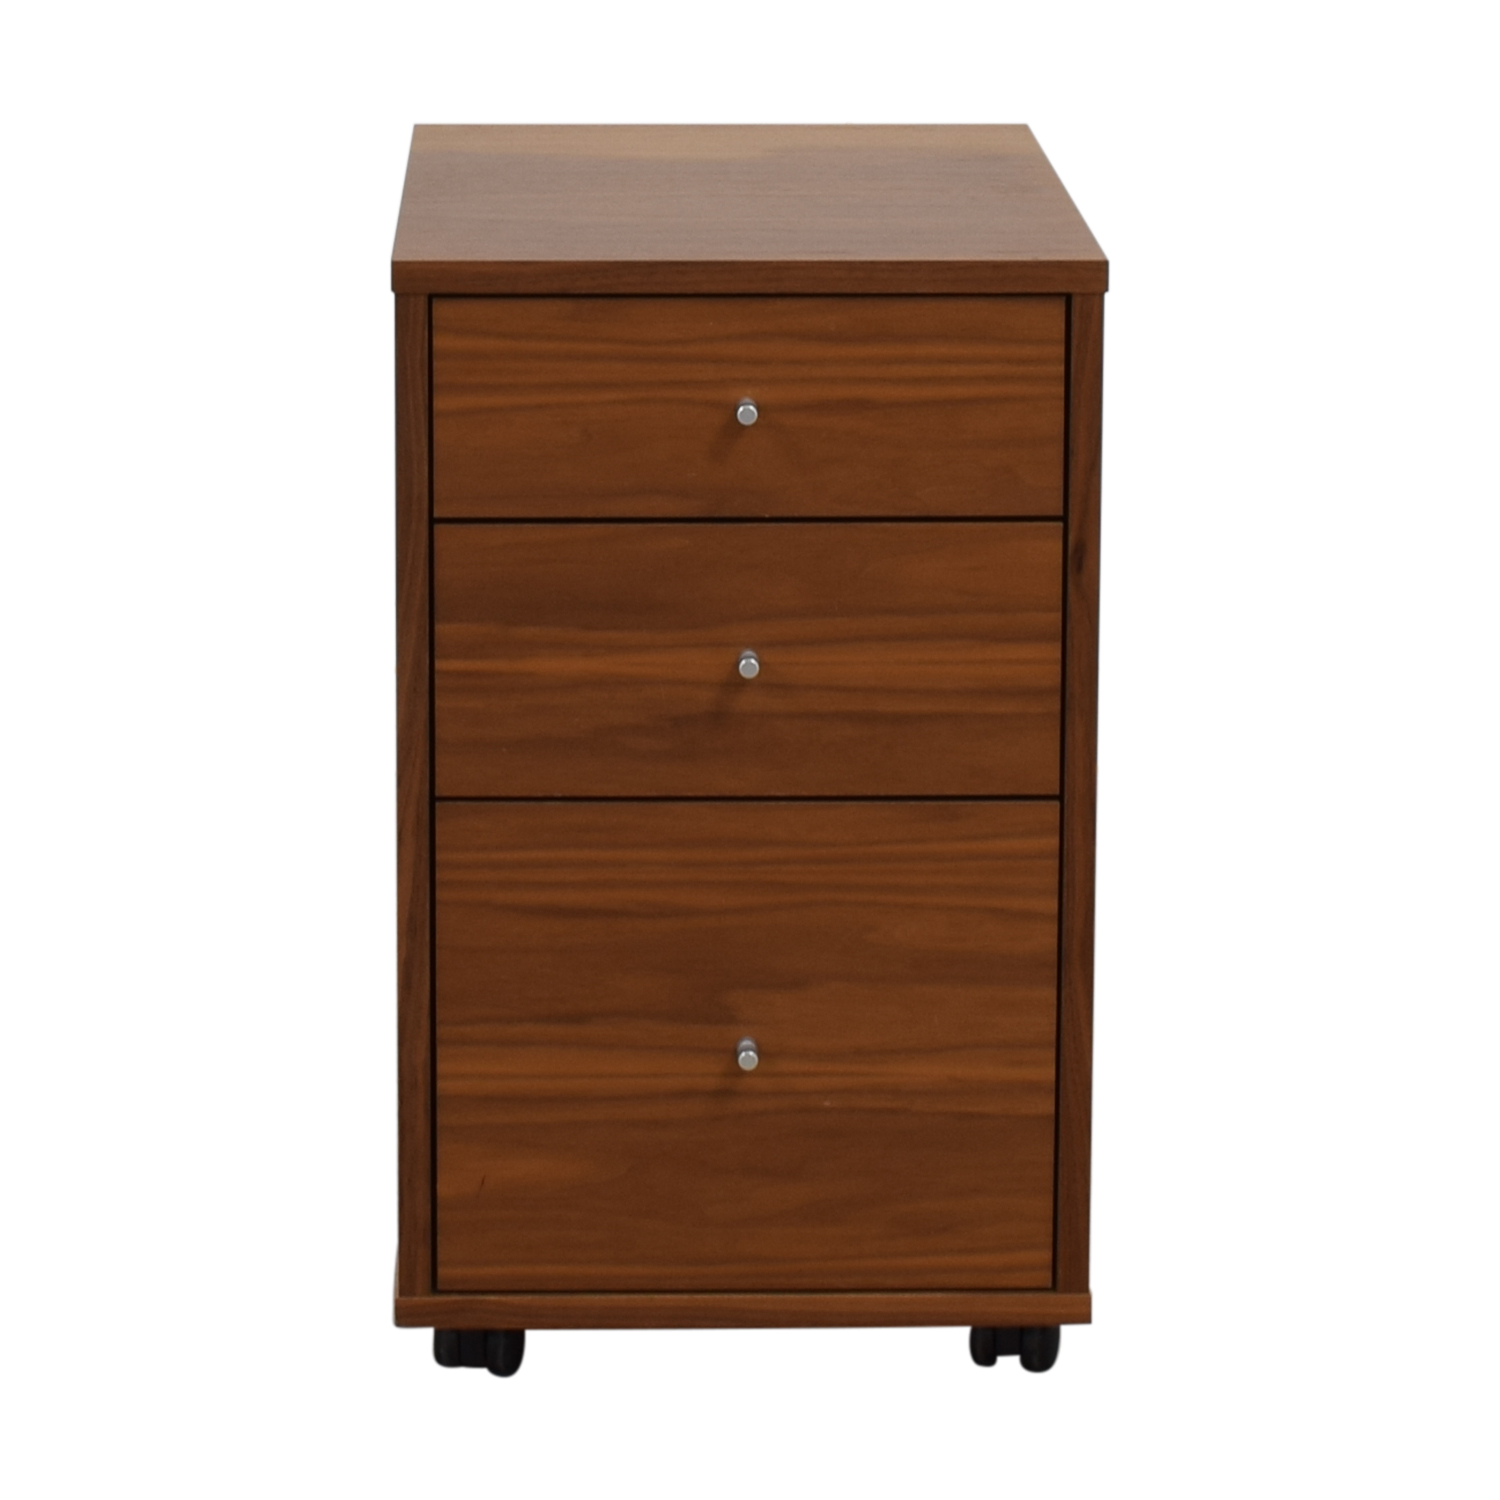 shop Room & Board Sequel Rolling Three-Drawer File Cabinet Room & Board Sofas